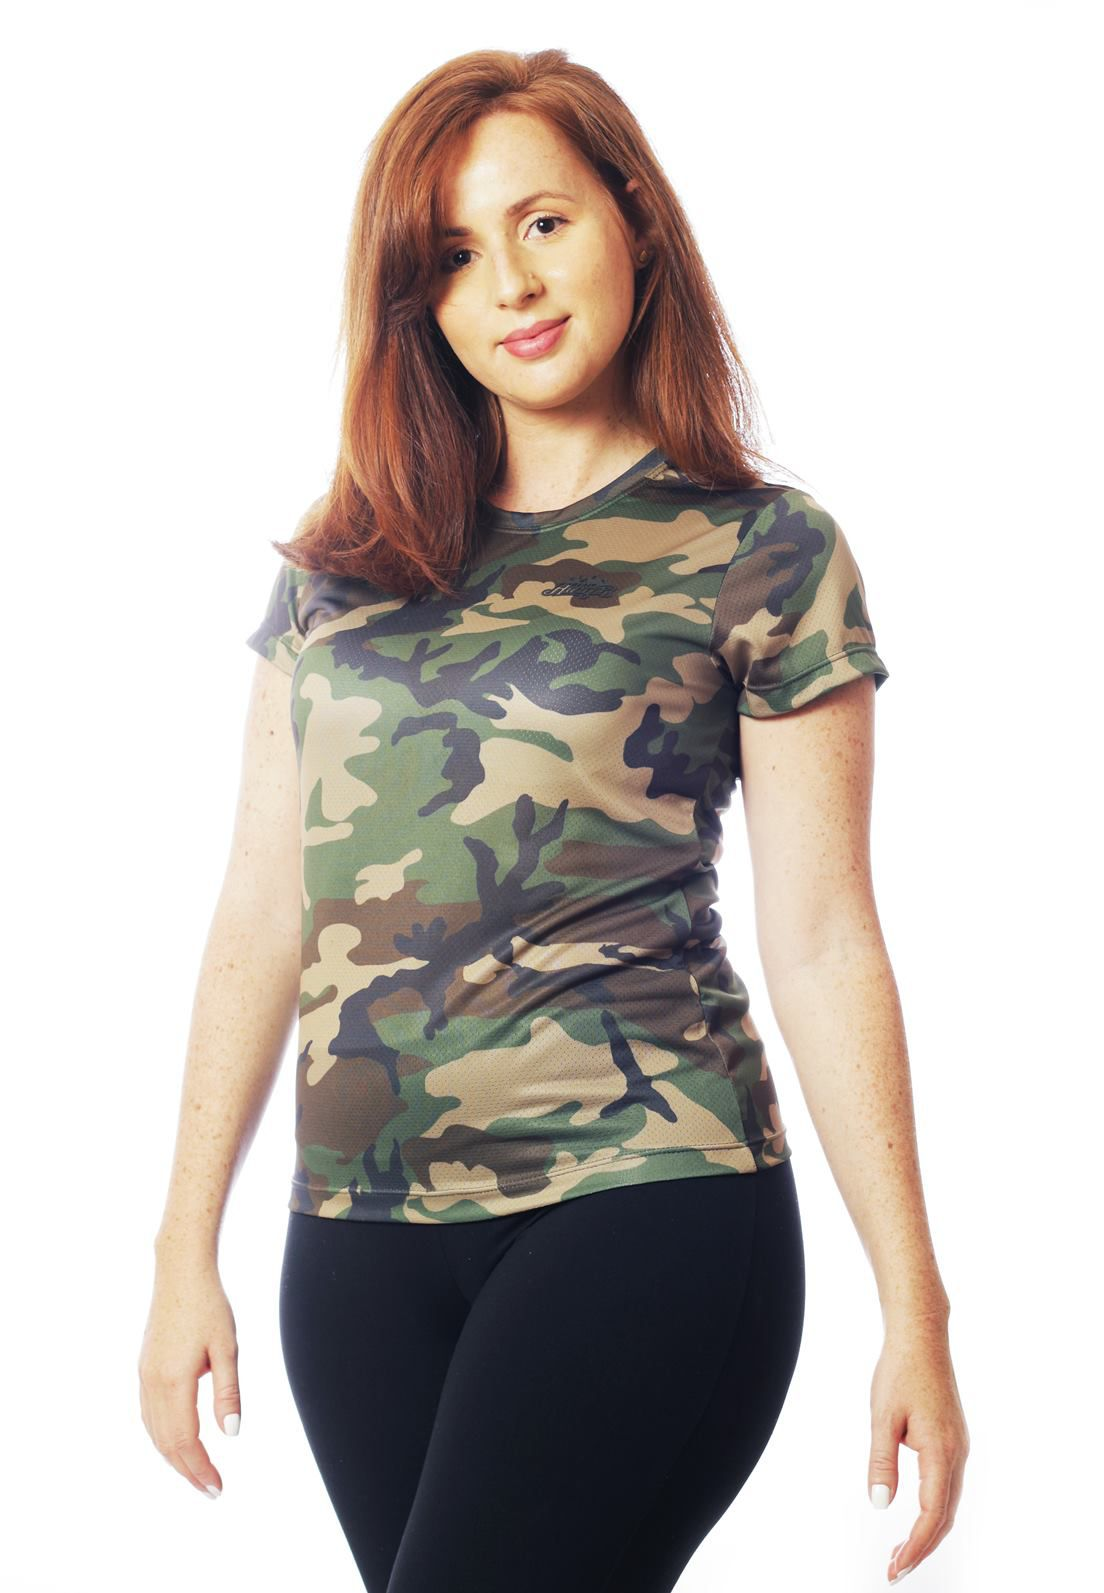 CAMISETA BABY LOOK CAMUFLADA WOODLAND MANGA CURTA FEMININA  - REAL HUNTER OUTDOORS